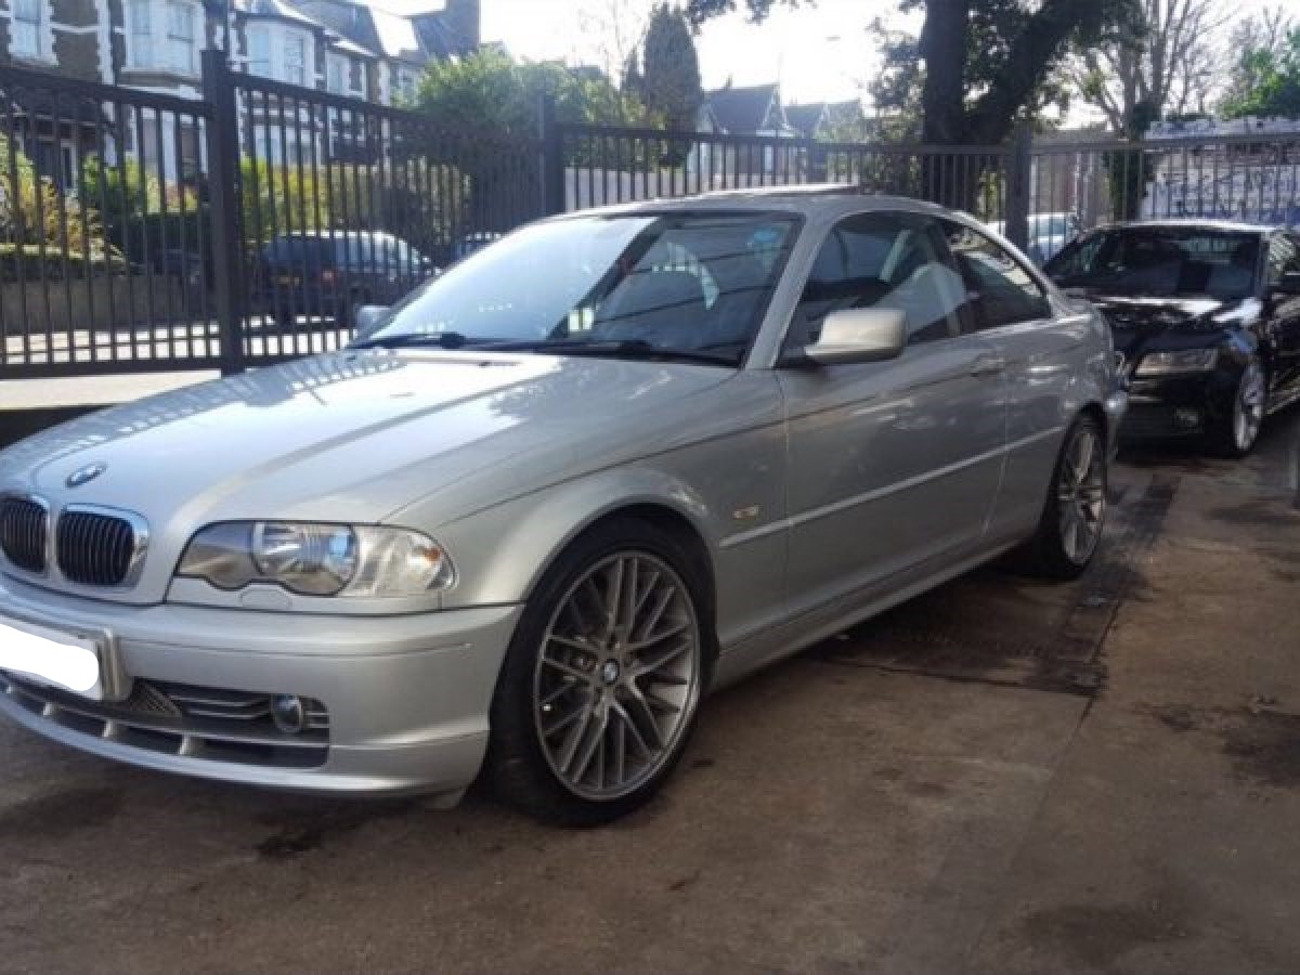 Rent Bmw Series 3 E46 330 Coupe 2001 In Potters Bar Rent For 250 00 Day 178 57 Week